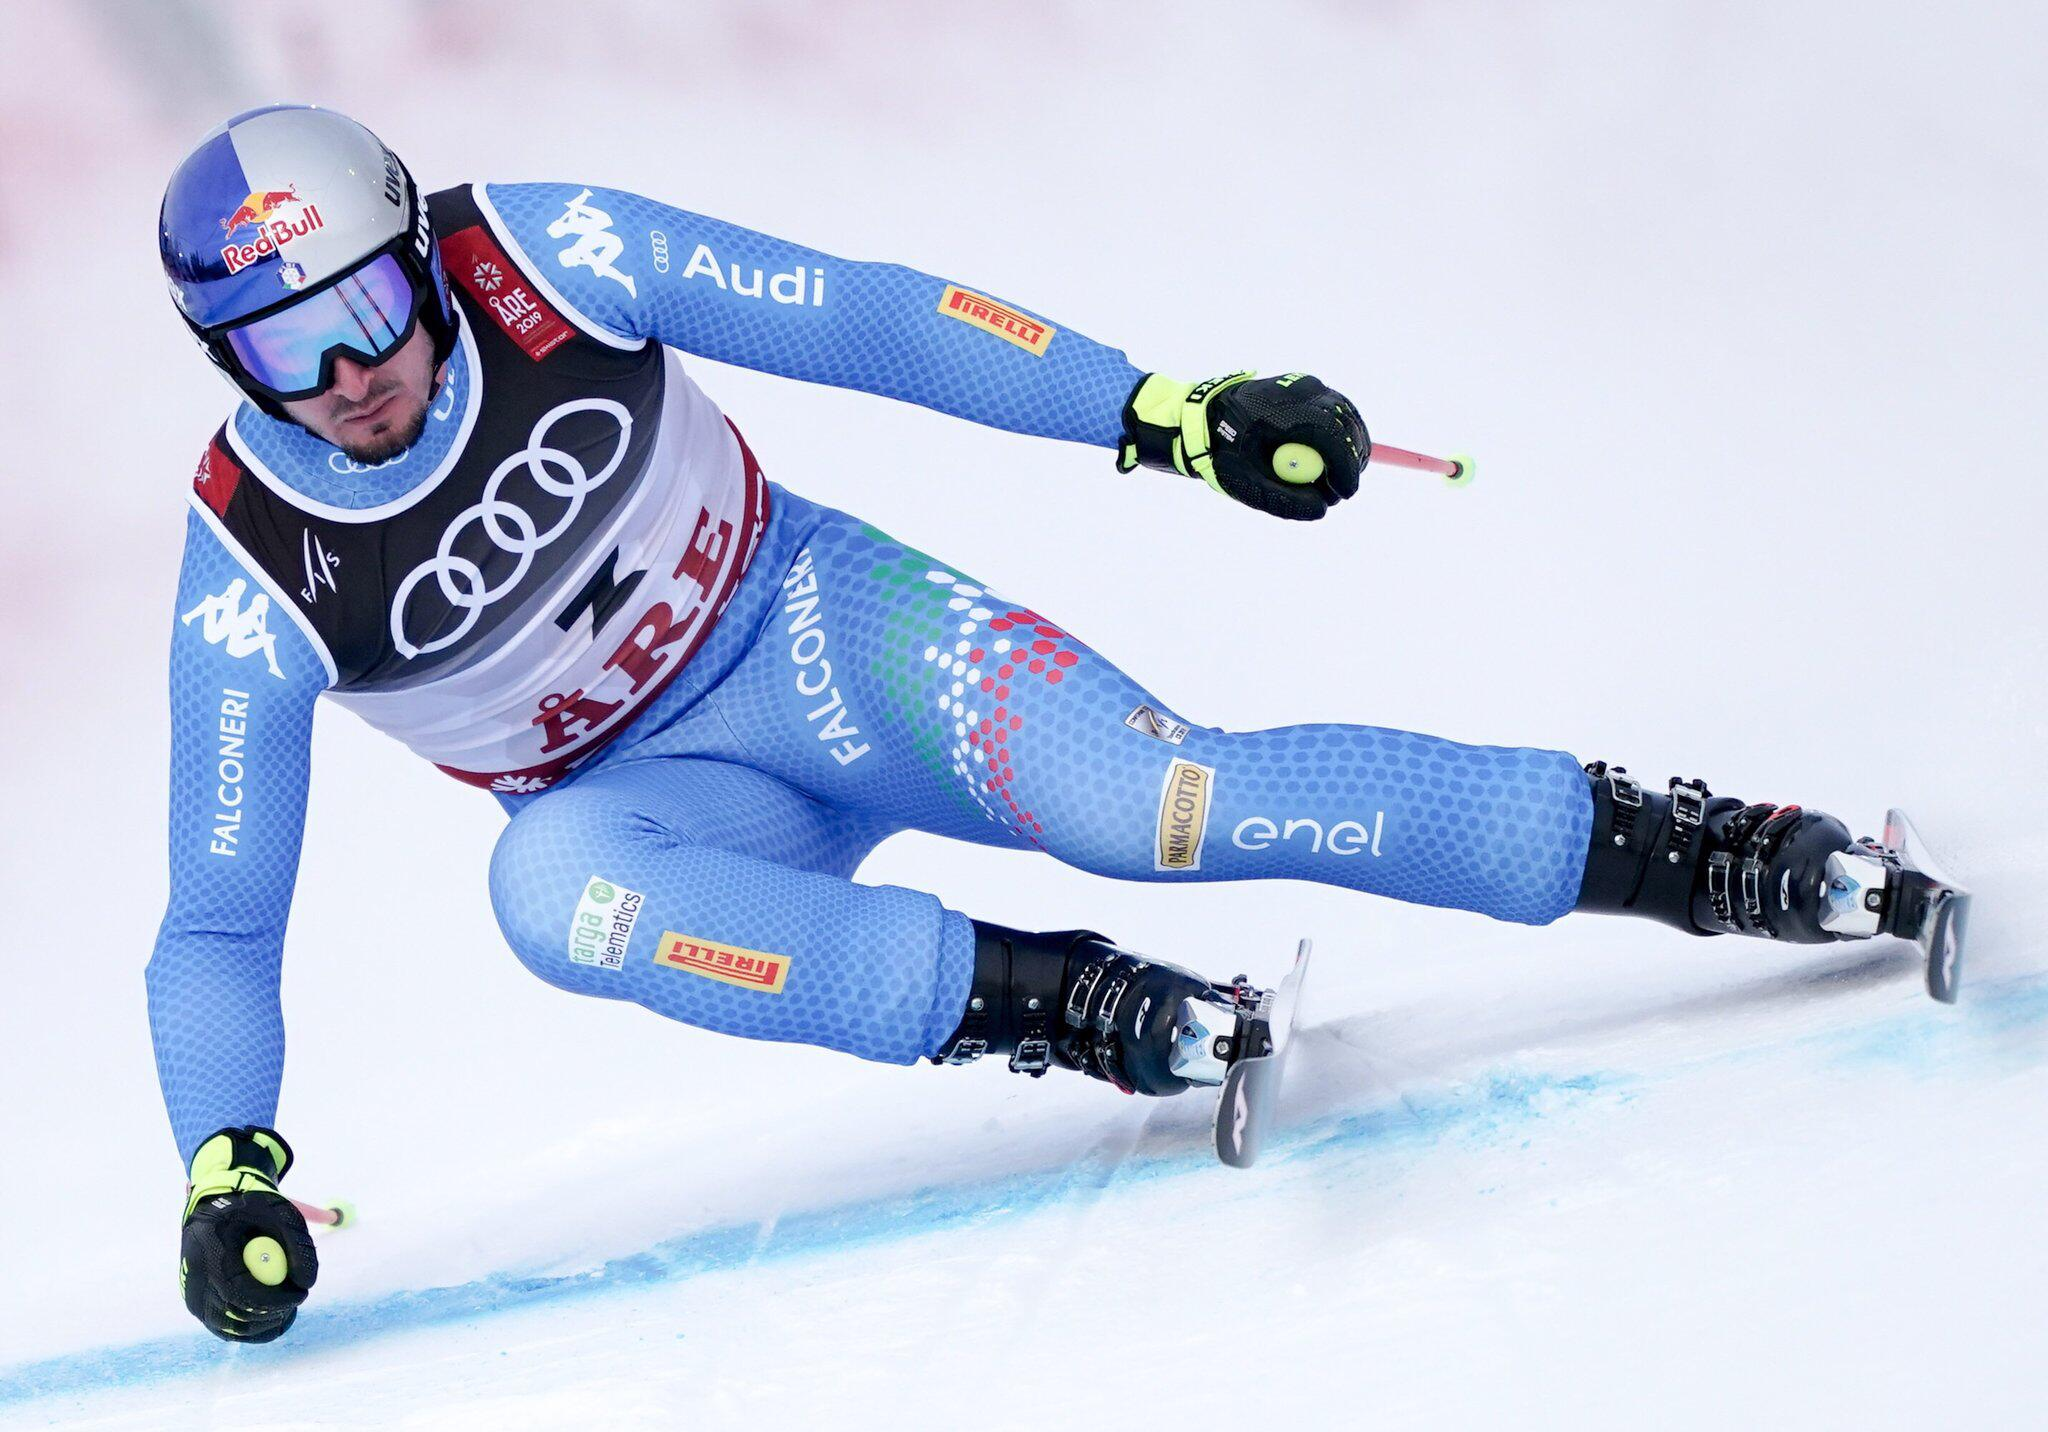 Bild zu Ski alpin, WM, Are, Dominik Paris, Super-G